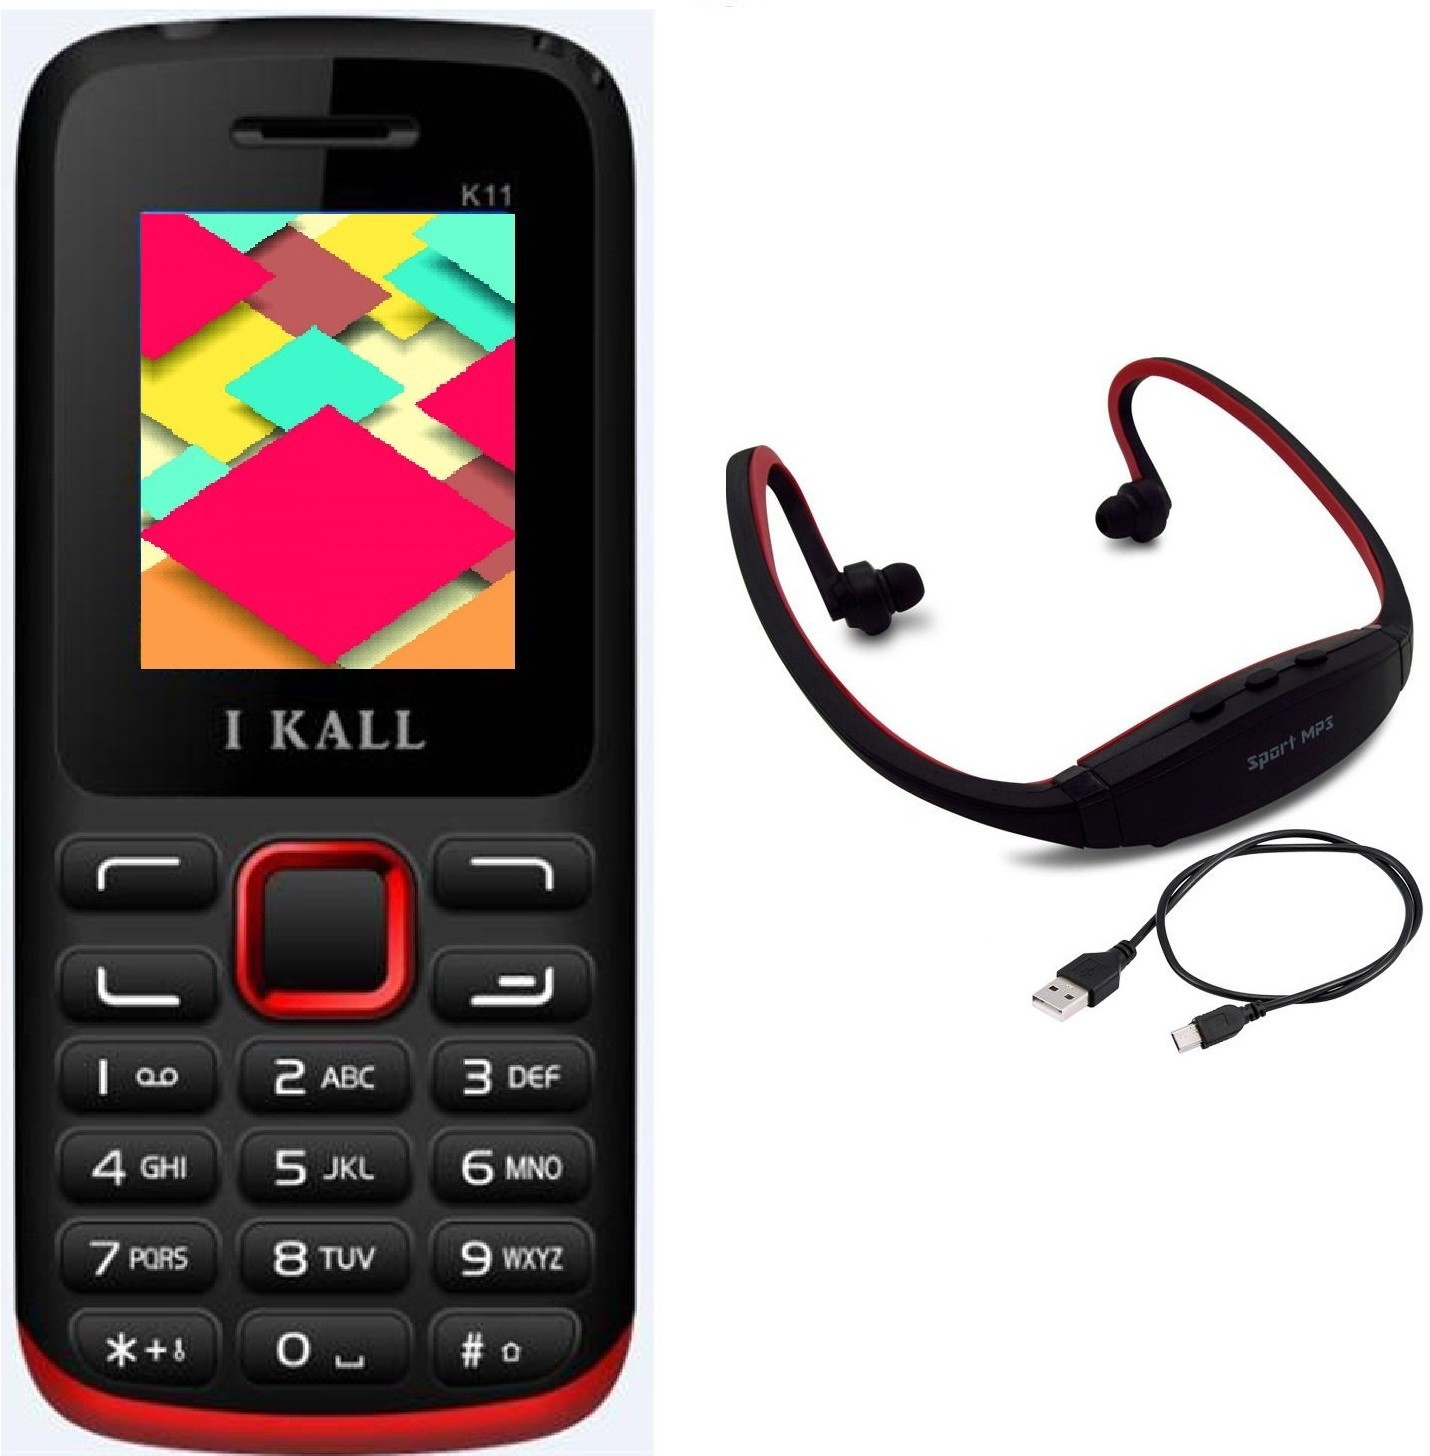 I Kall K11 with MP3/FM Player Neckband(Black & Red)